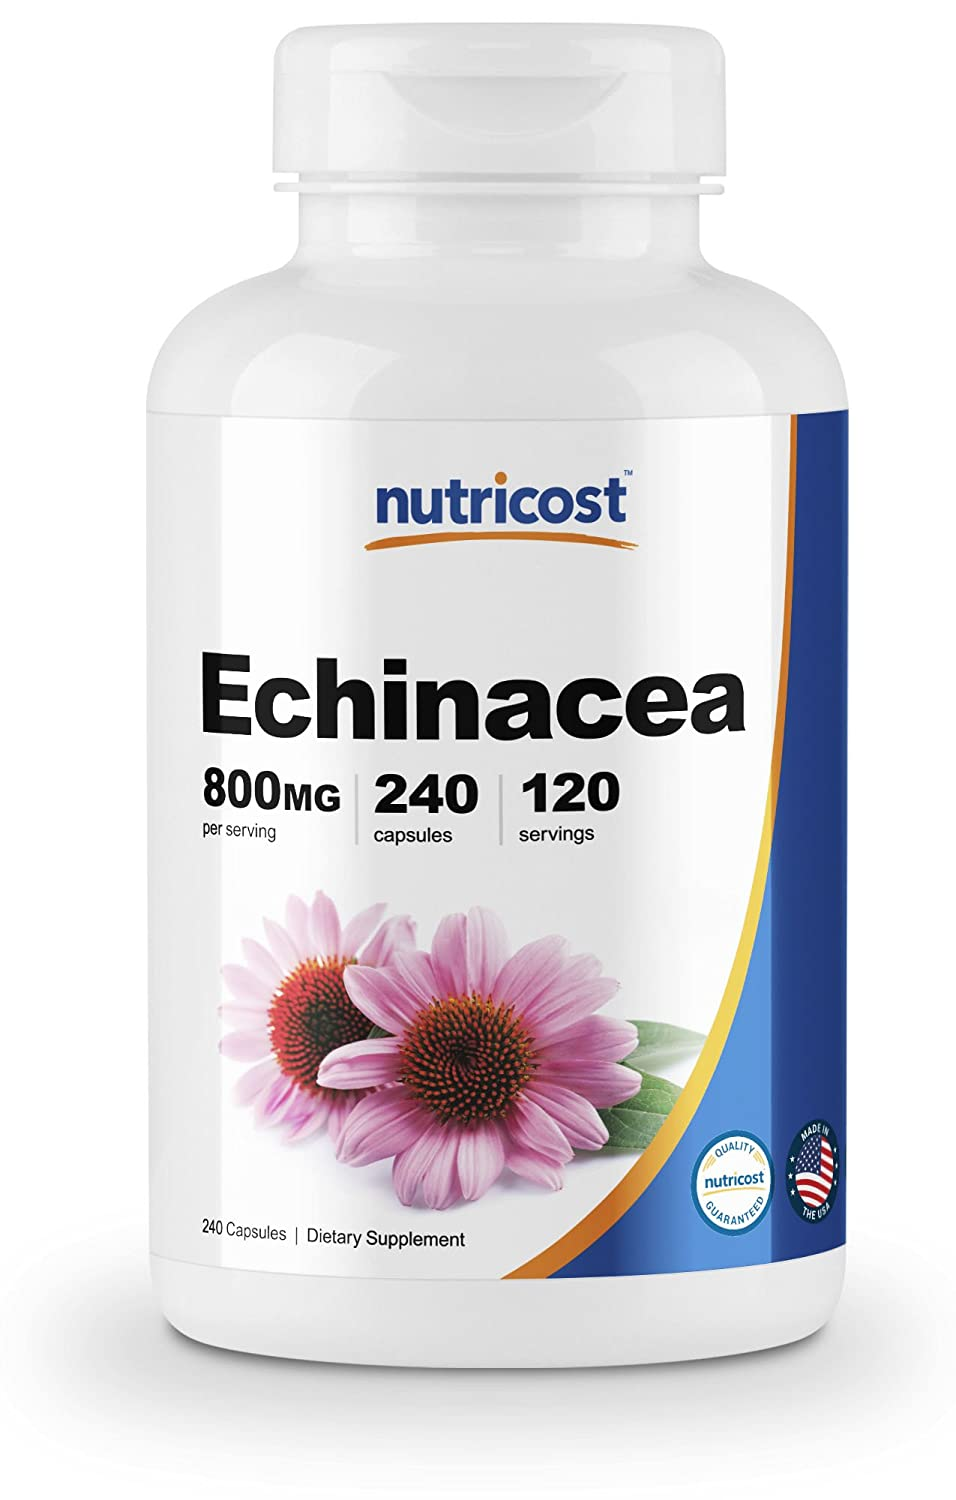 Nutricost Echinacea 800 mg, 240 Capsules - High Quality Veggie Caps, Non GMO, Gluten Free, 120 Servings